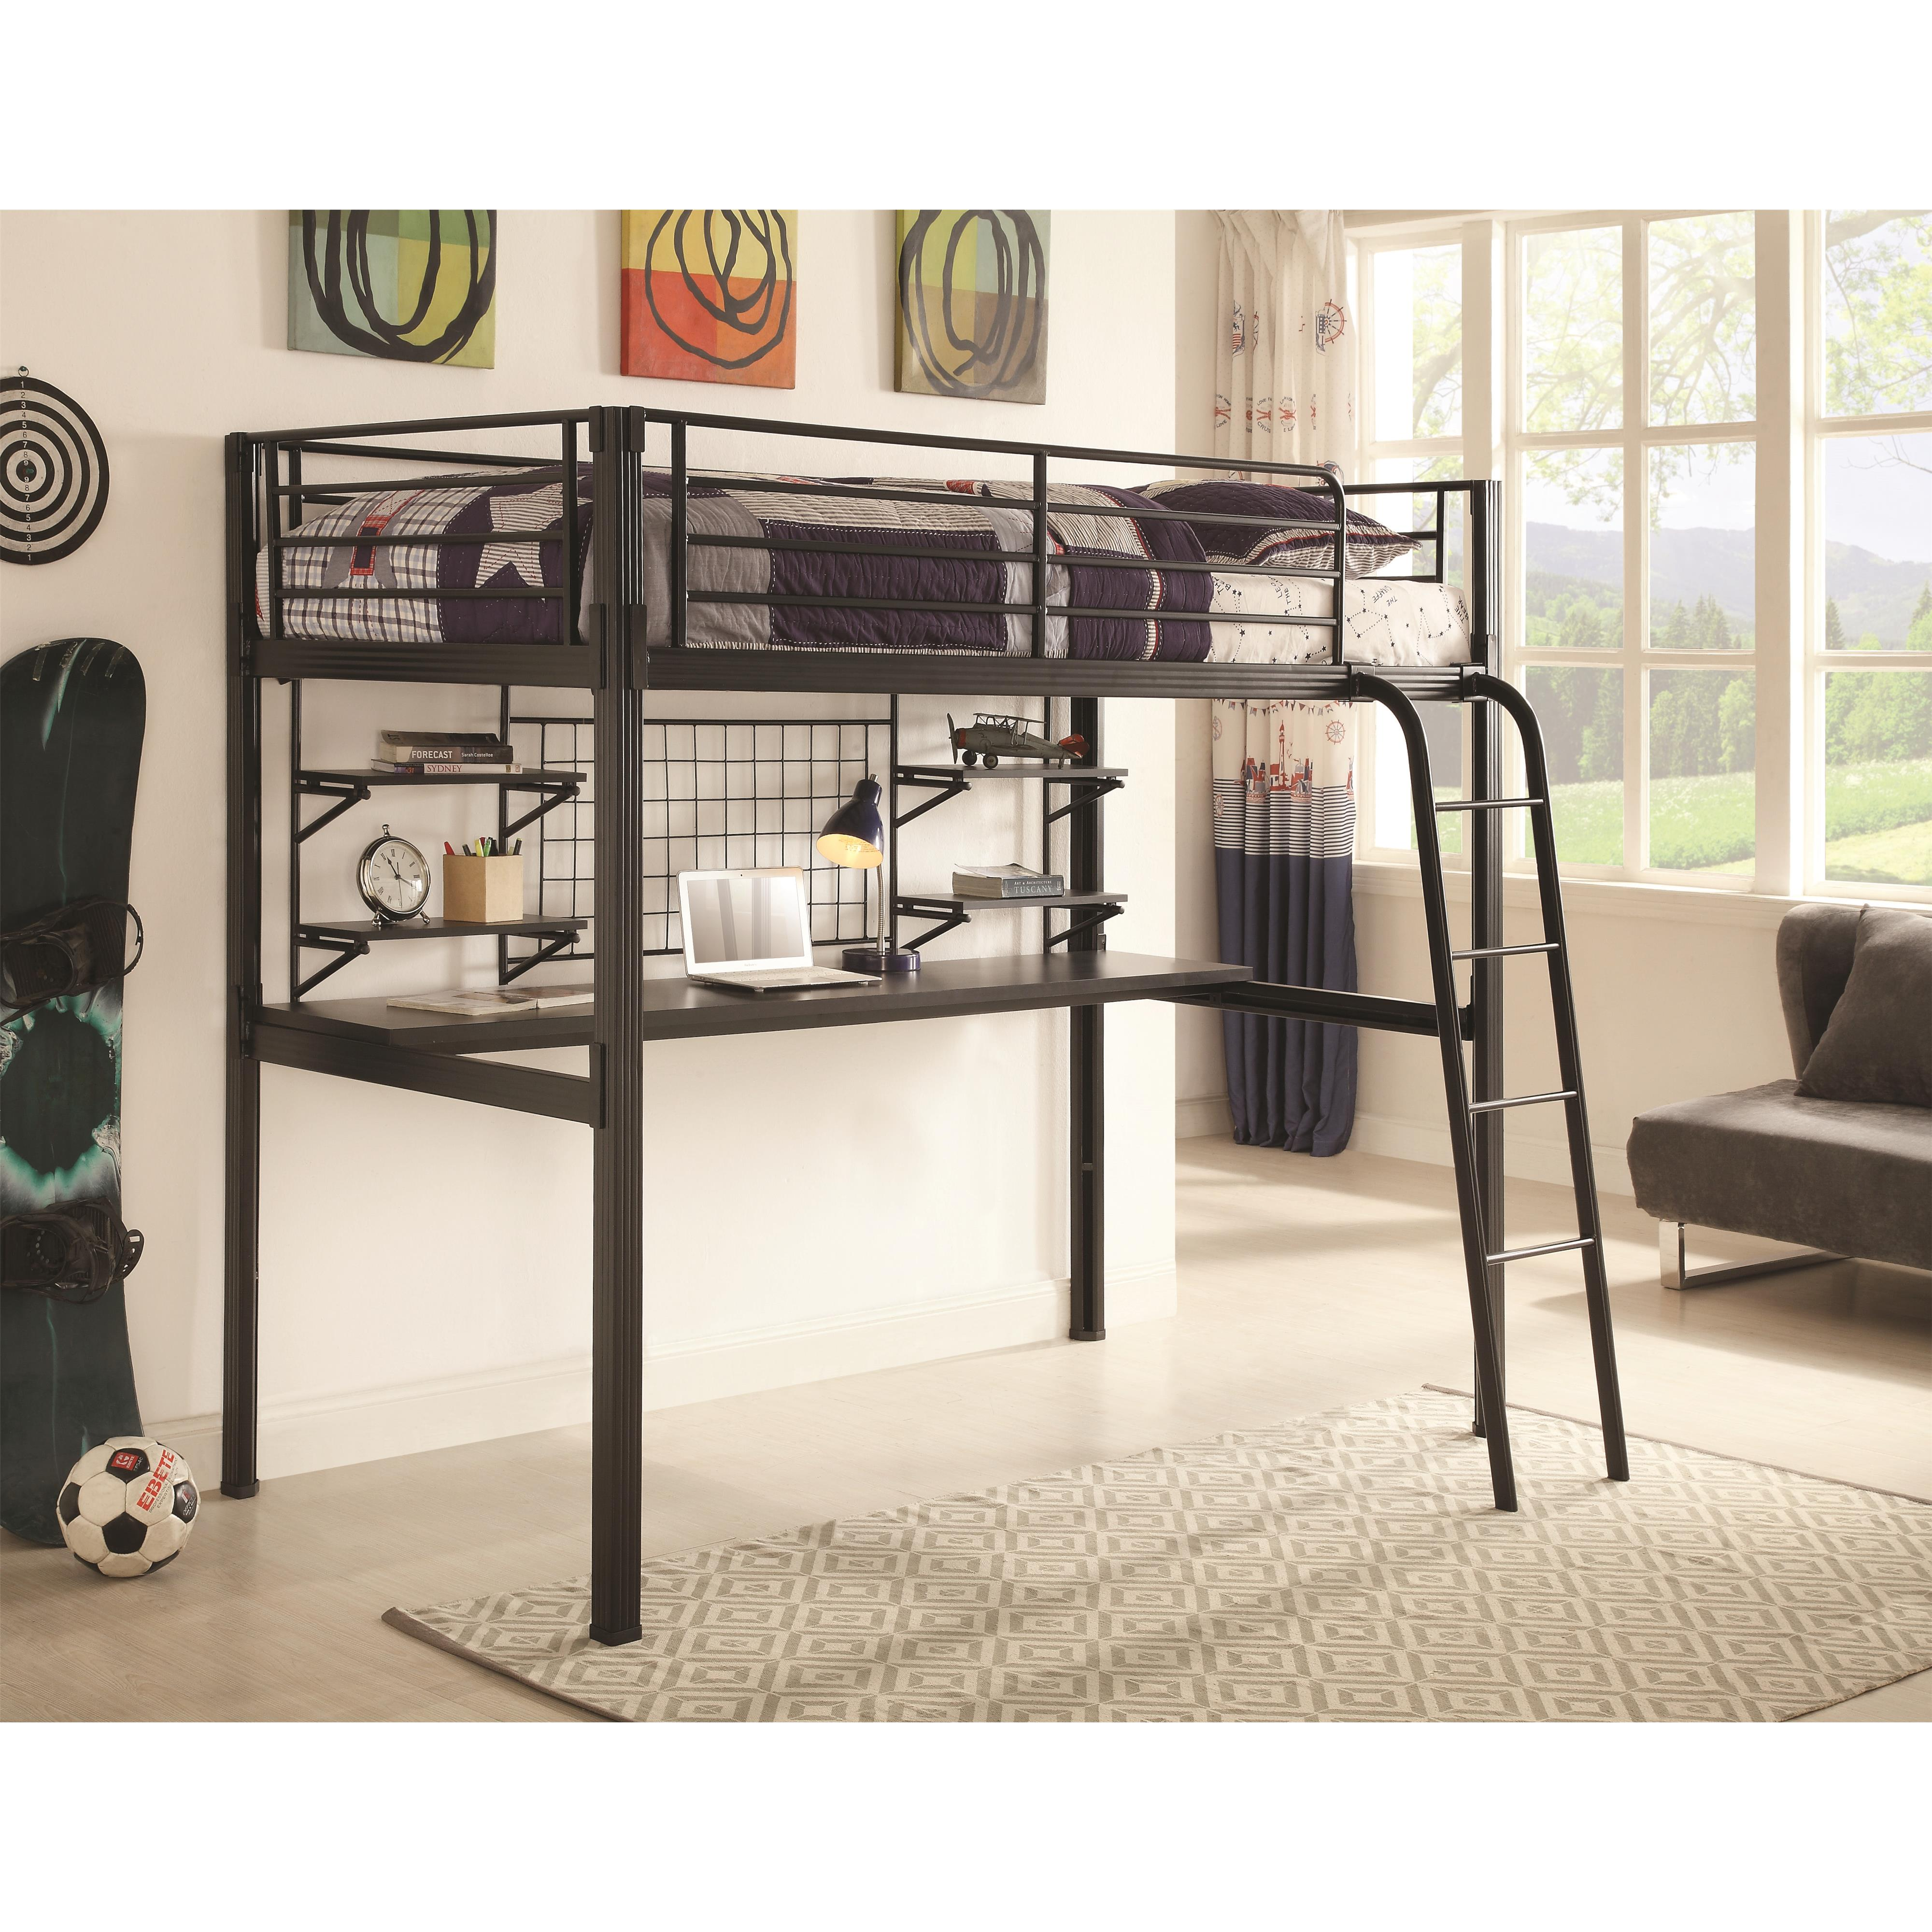 Coaster Bunks Twin Loft Bunk Bed - Item Number: 400706T